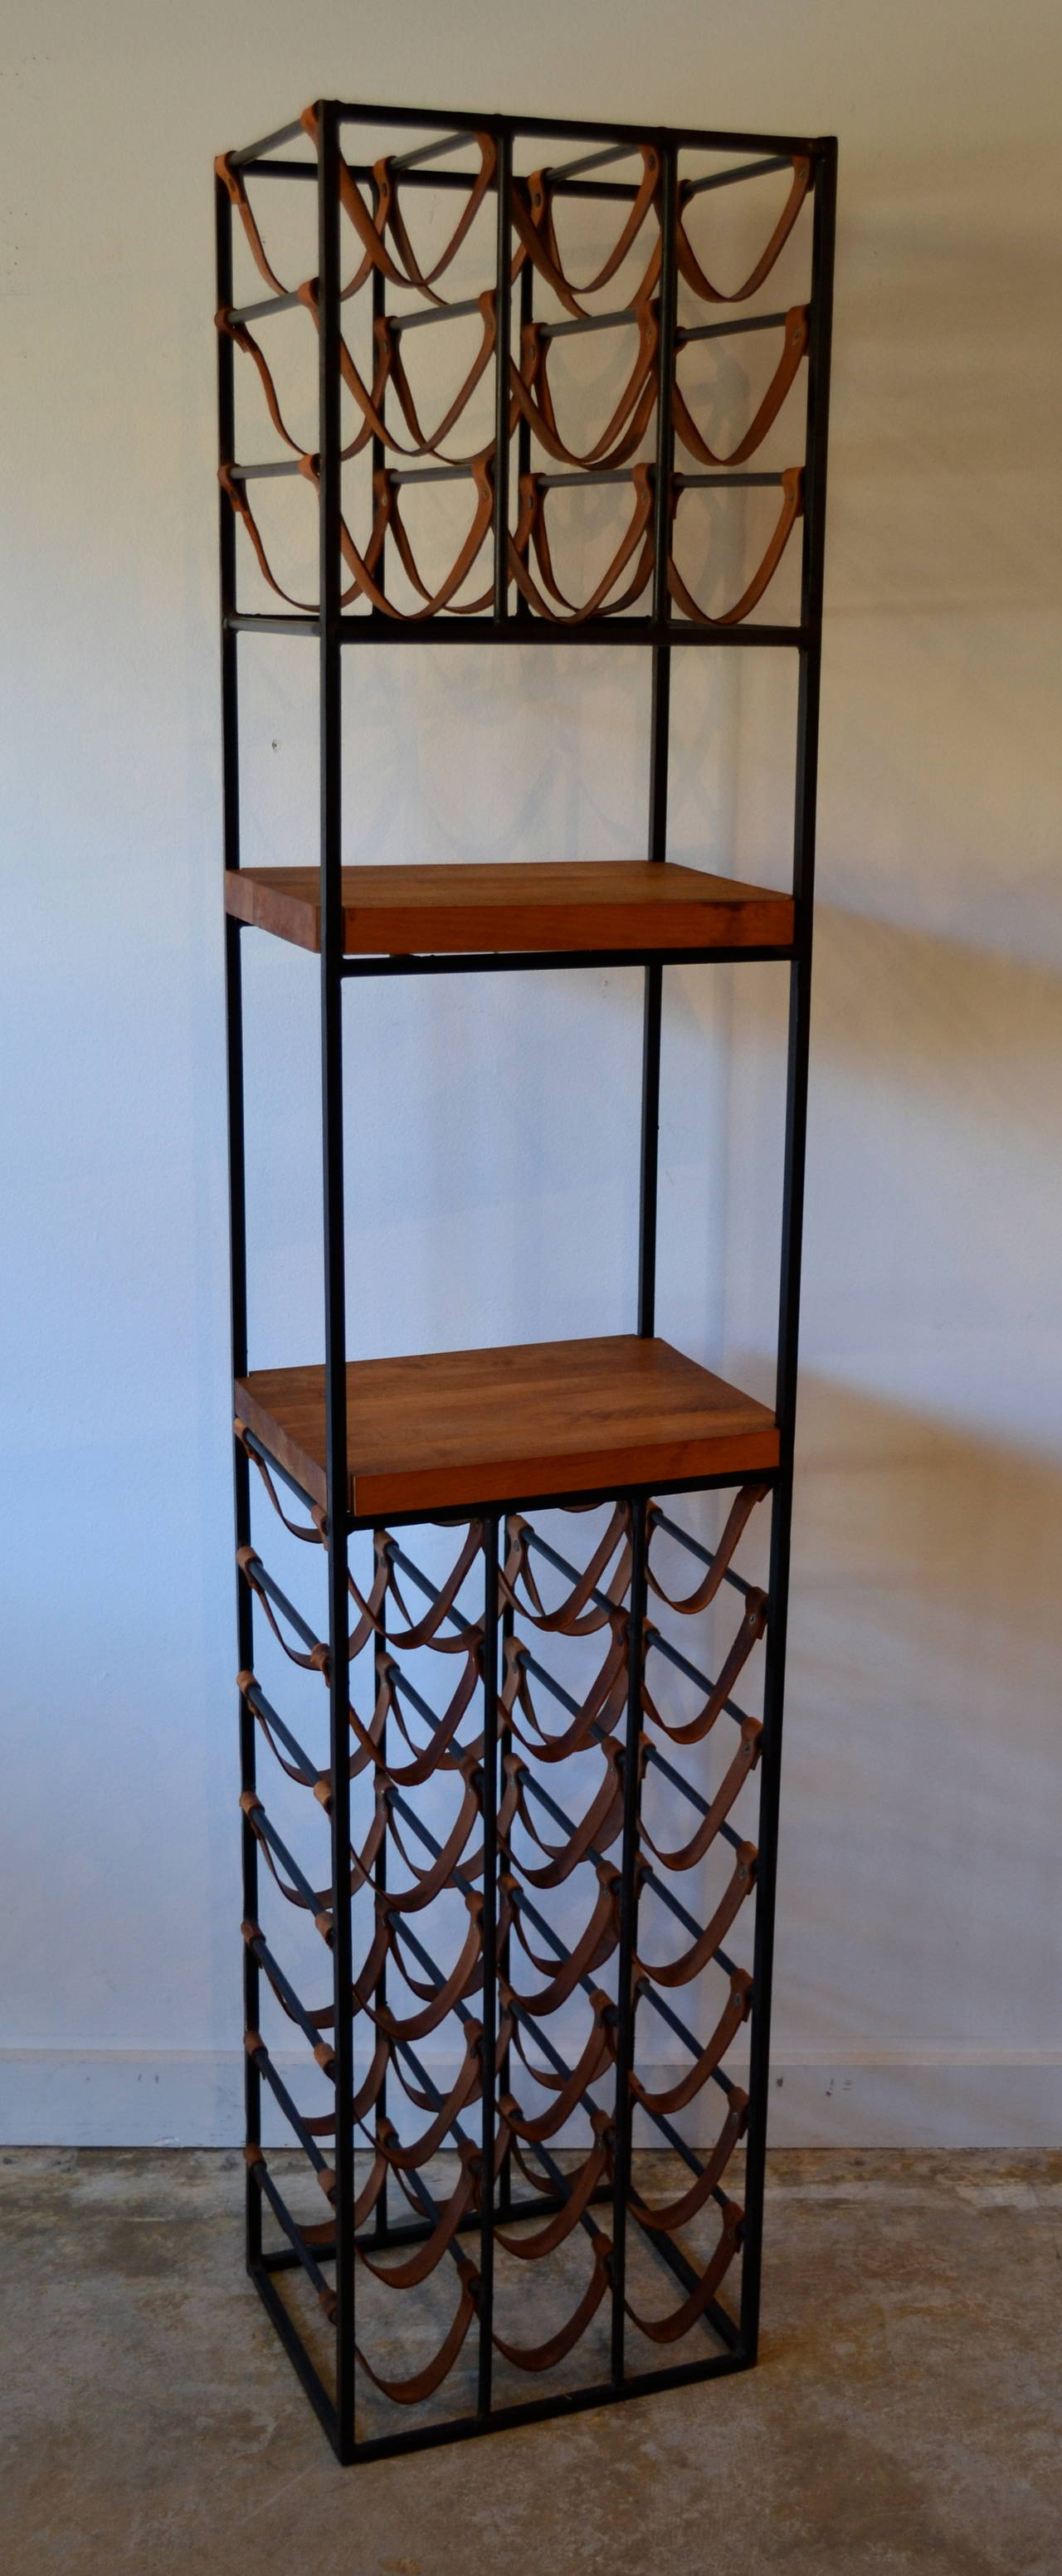 Two identical large tower wine racks by Arthur Umanoff, made of wrought iron with leather straps, two butcher block shelves for cutting or display, holds 30 bottles each.